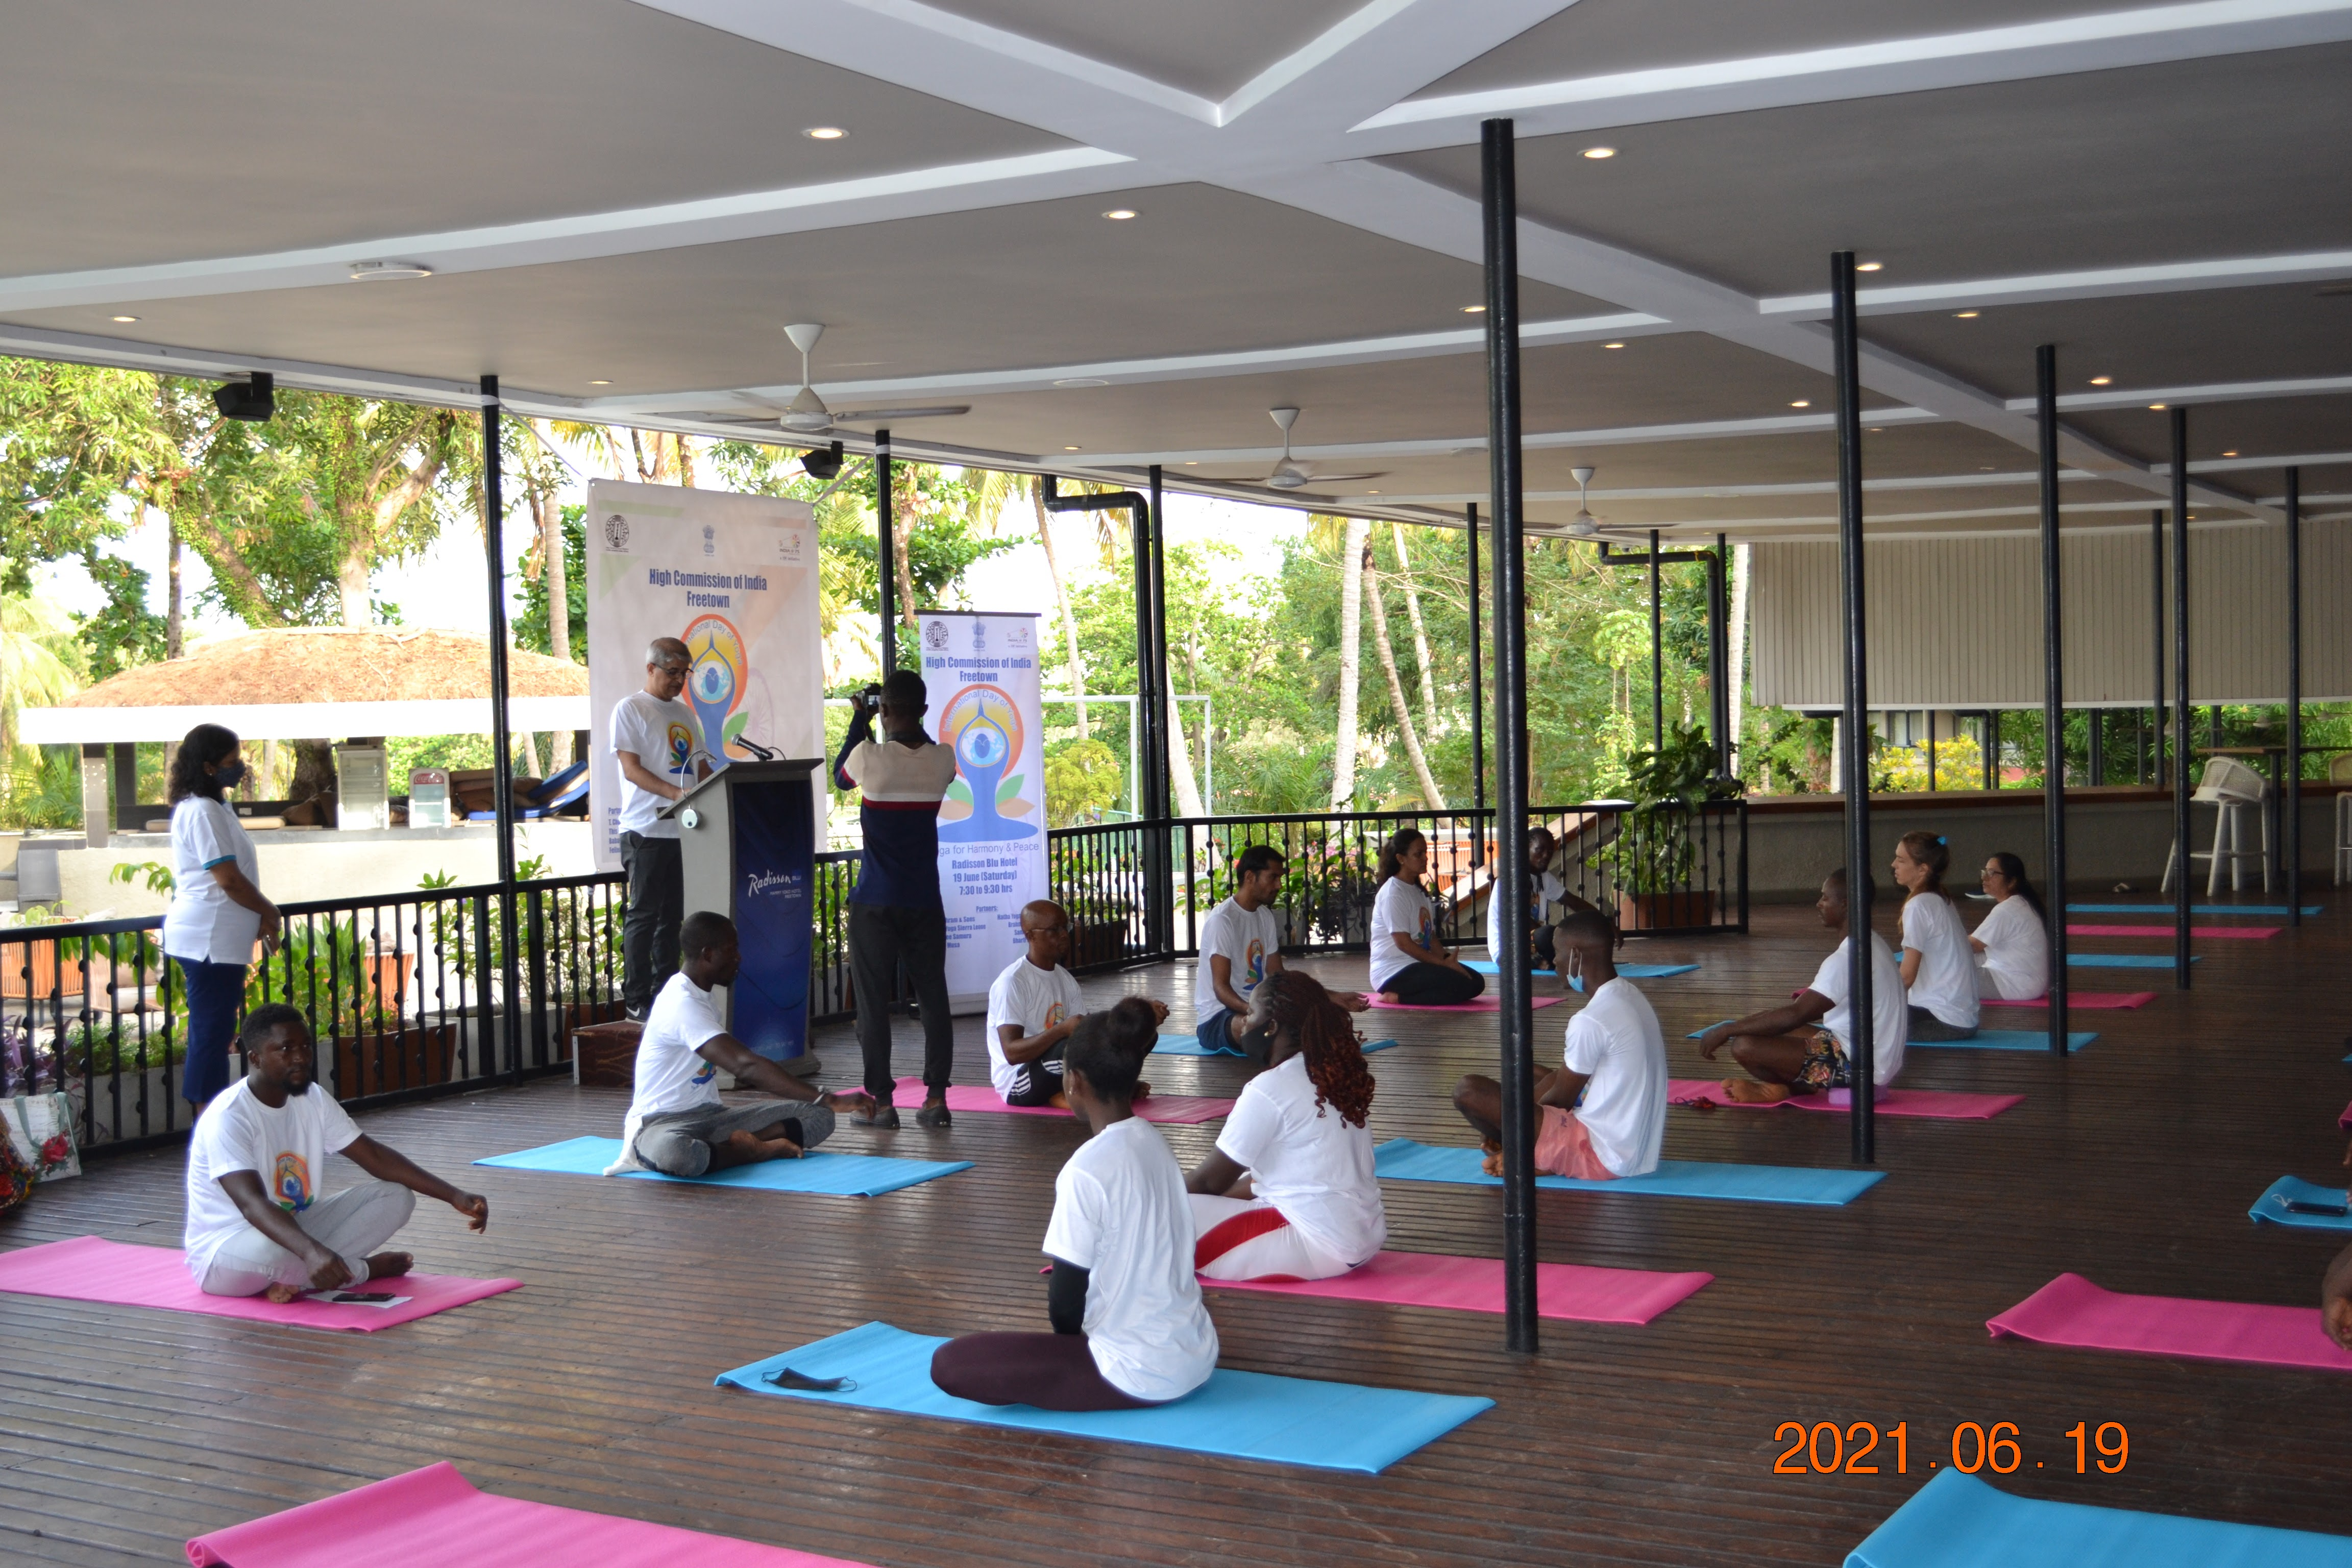 High Commission of India celebrates 'International Day of Yoga 2021' in Freetown, Sierra Leone